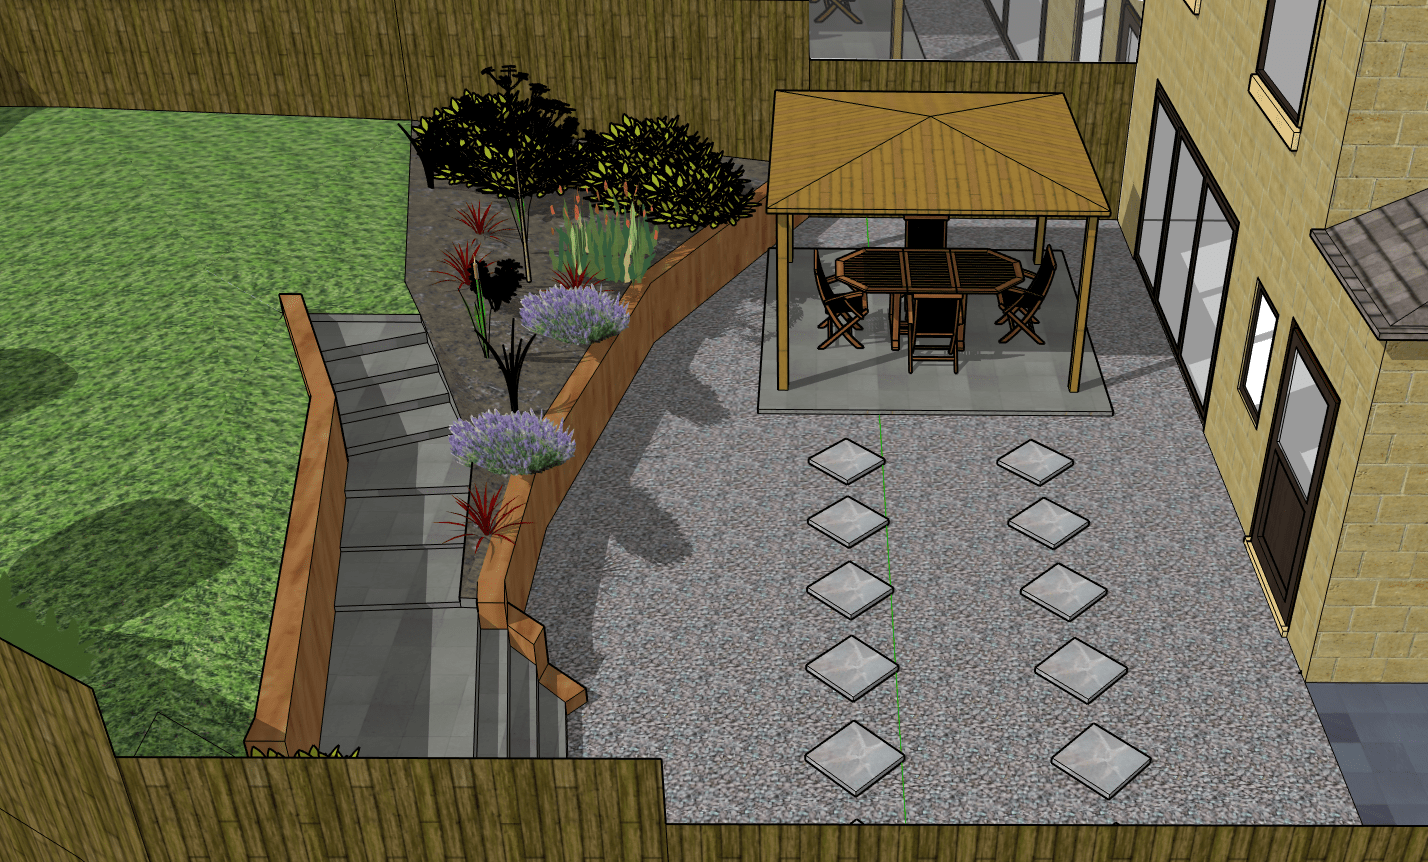 3d garden design of tiered garden with wooden gazebo